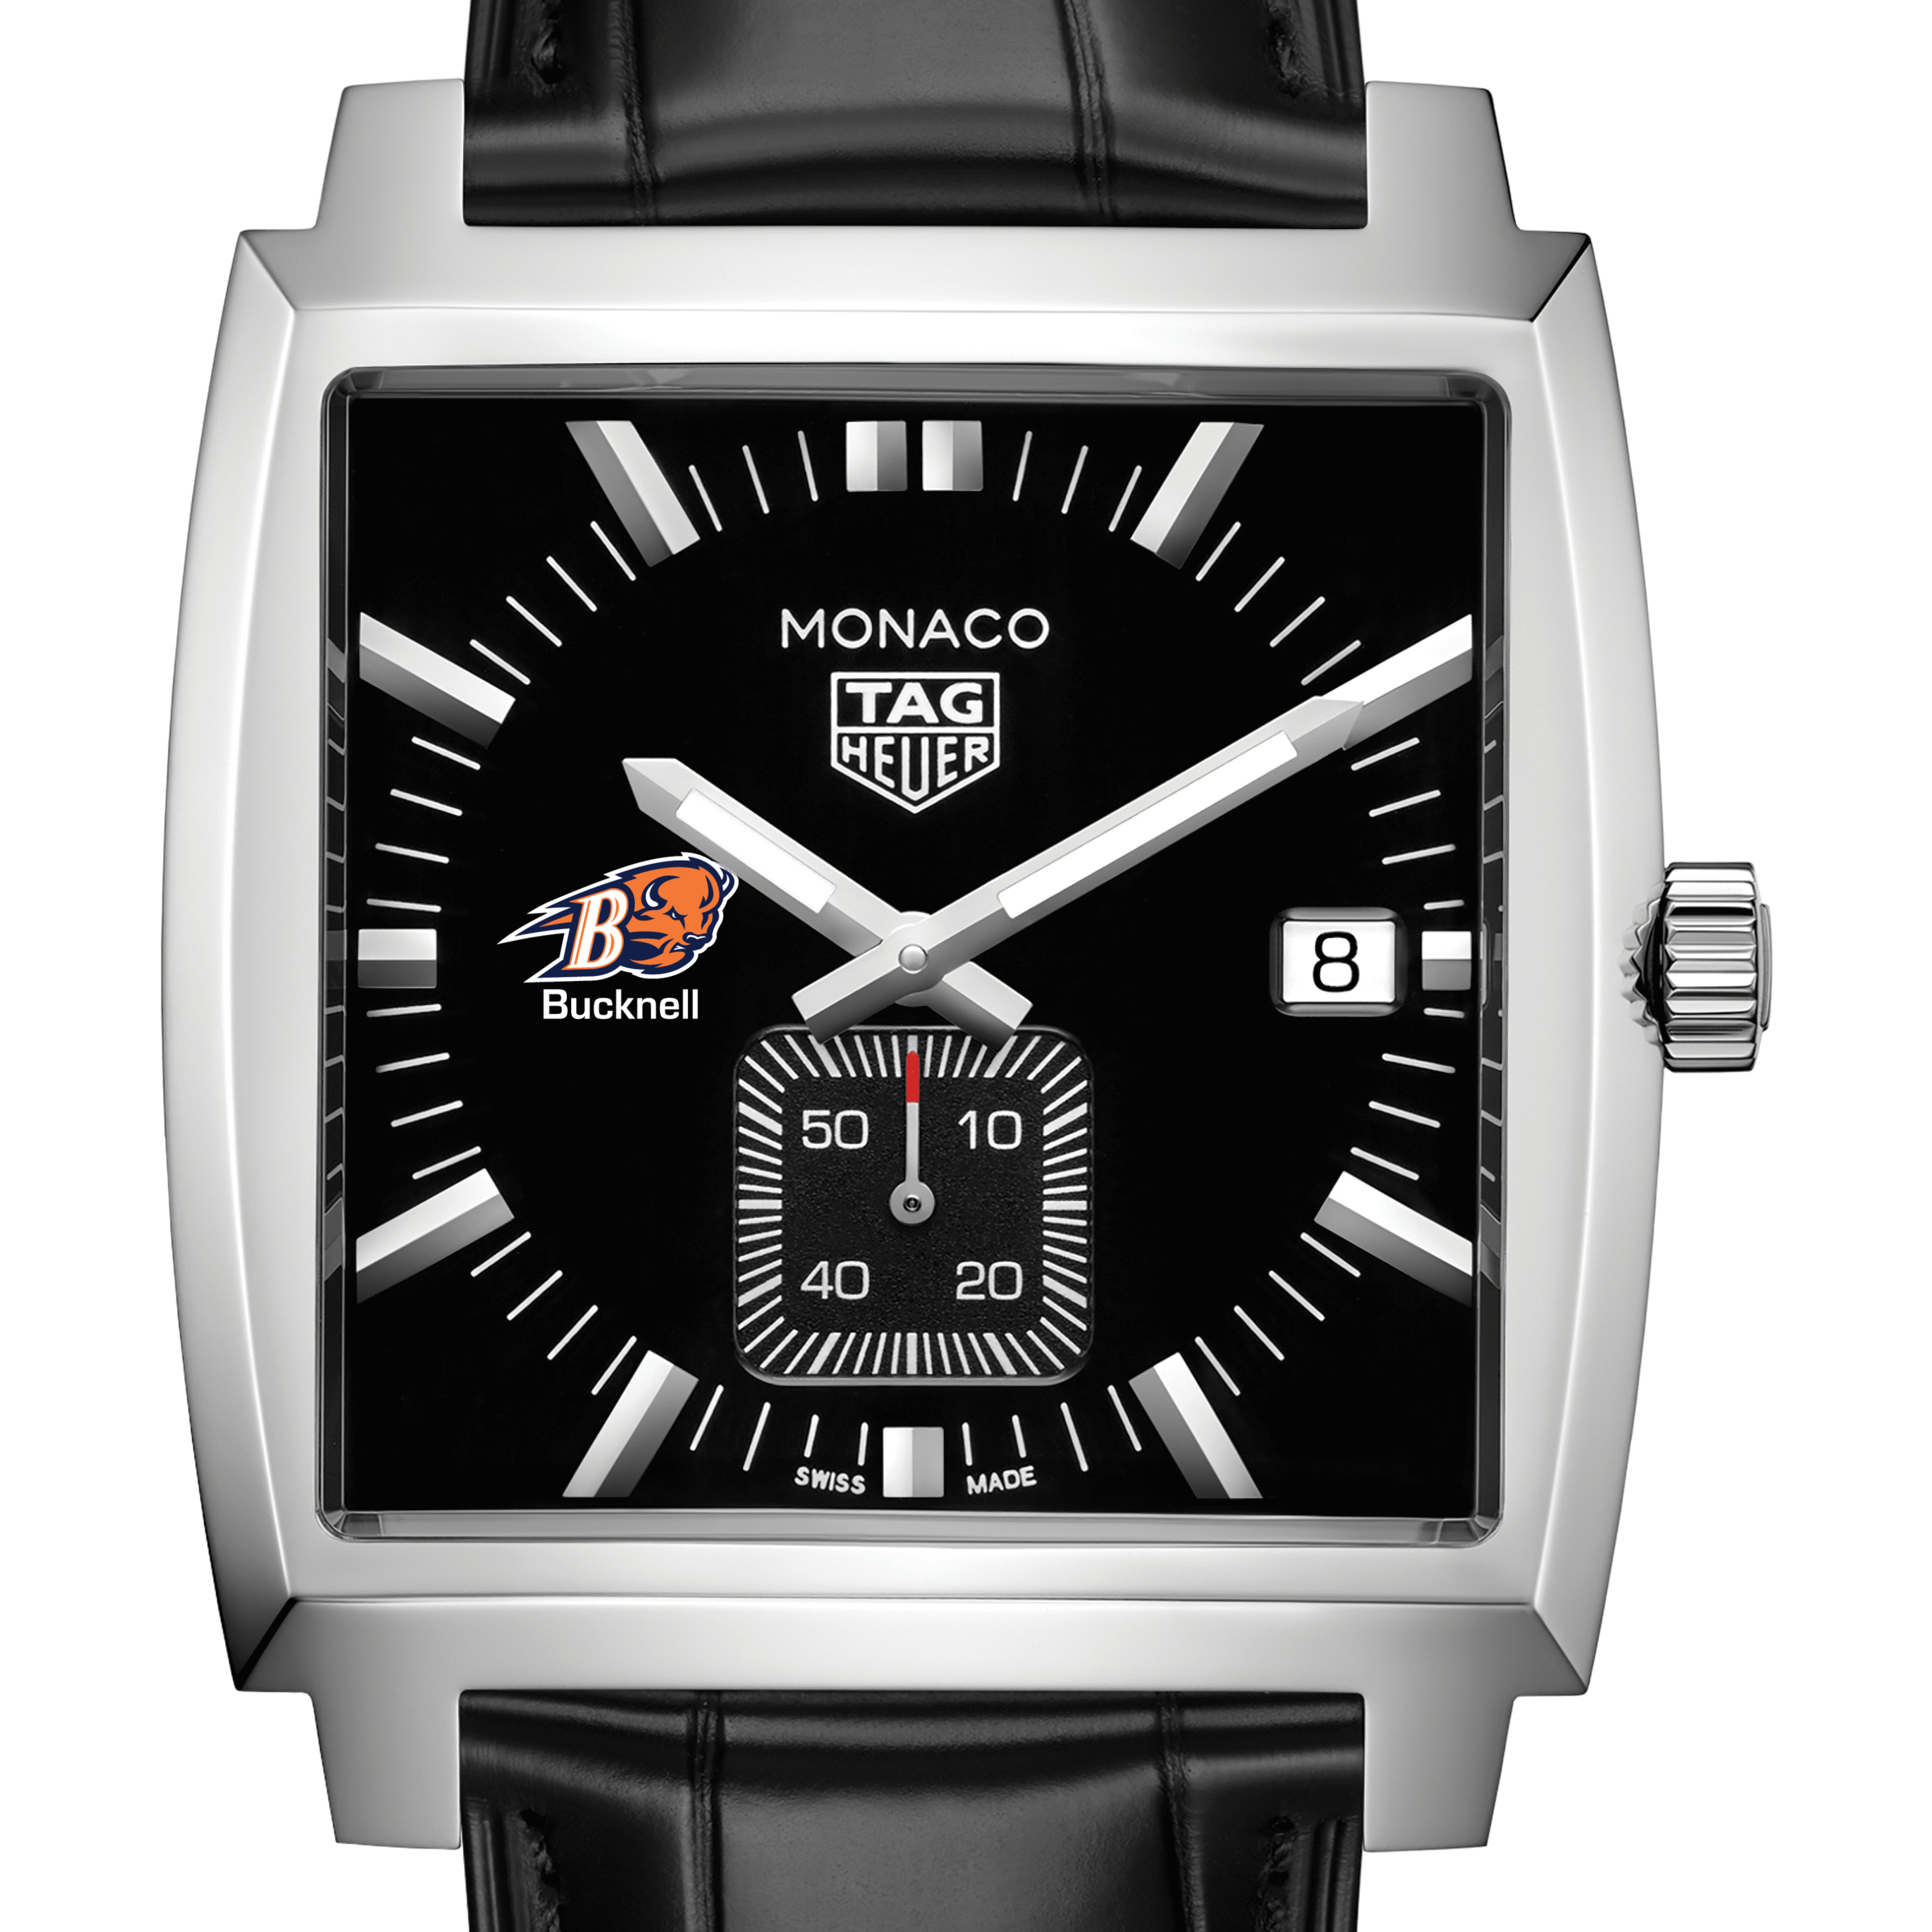 Bucknell University TAG Heuer Monaco with Quartz Movement for Men